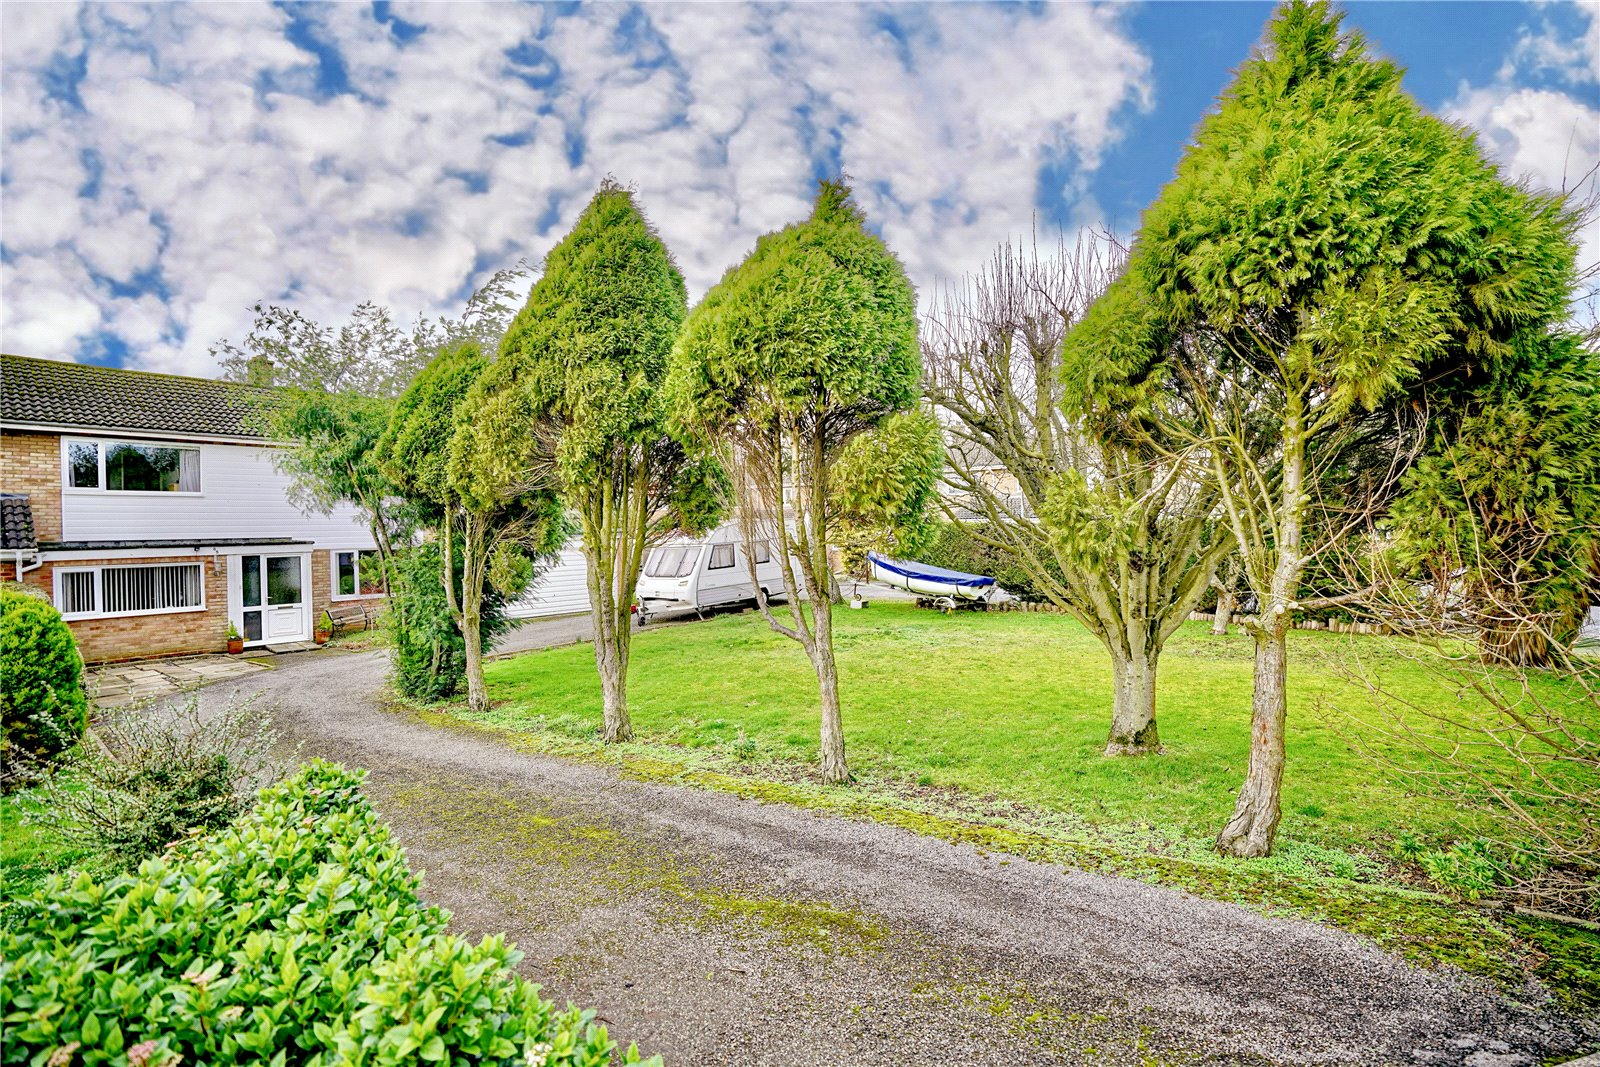 3 bed house for sale in Green Acres, Gamlingay, SG19